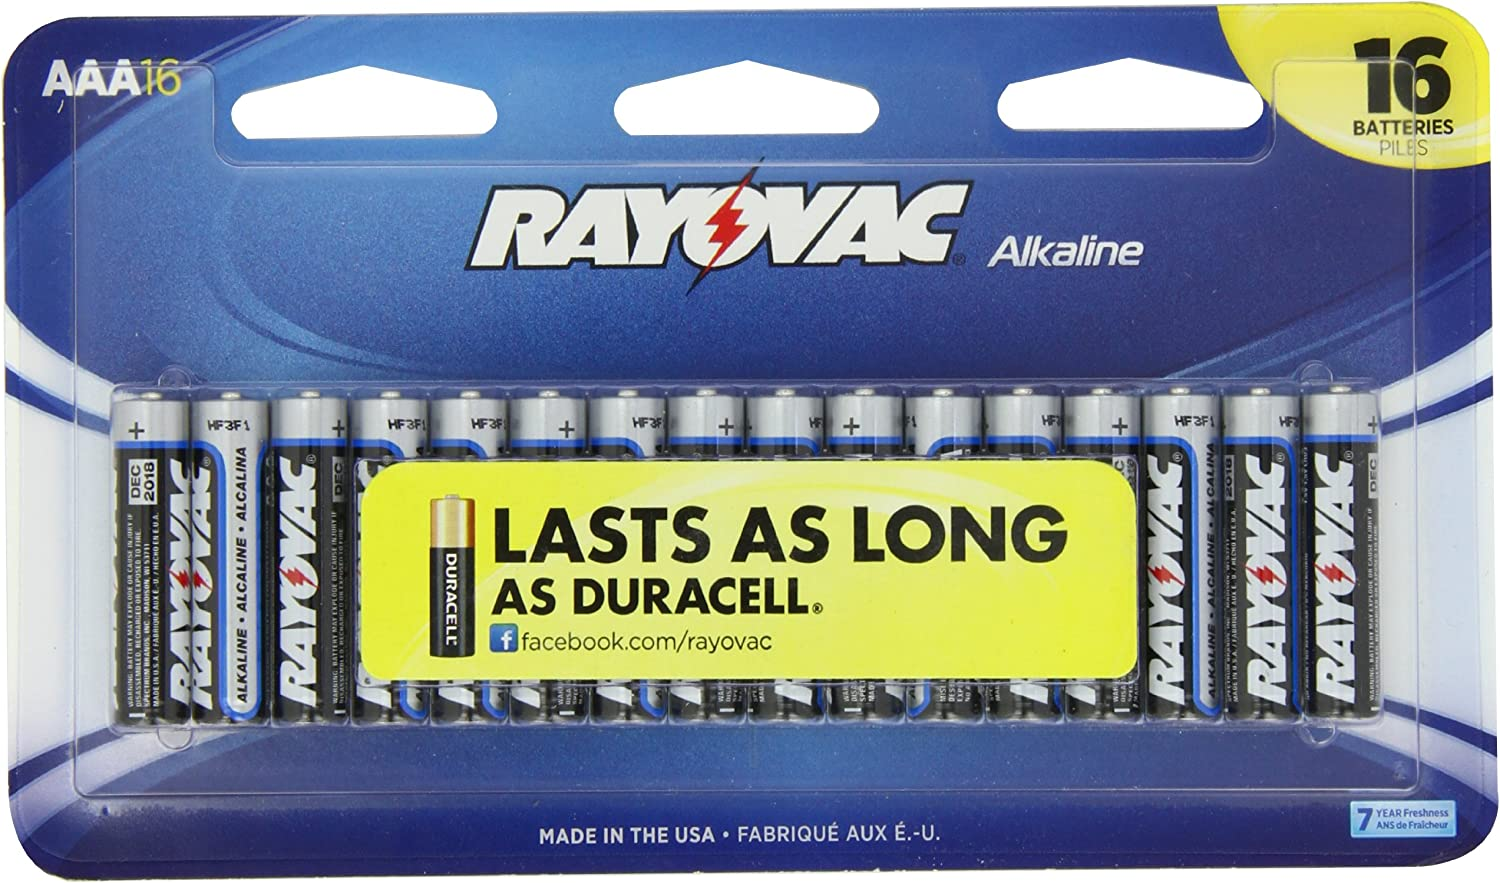 Rayovac Alkaline AAA 70% OFF Outlet 16-Pack Batteries